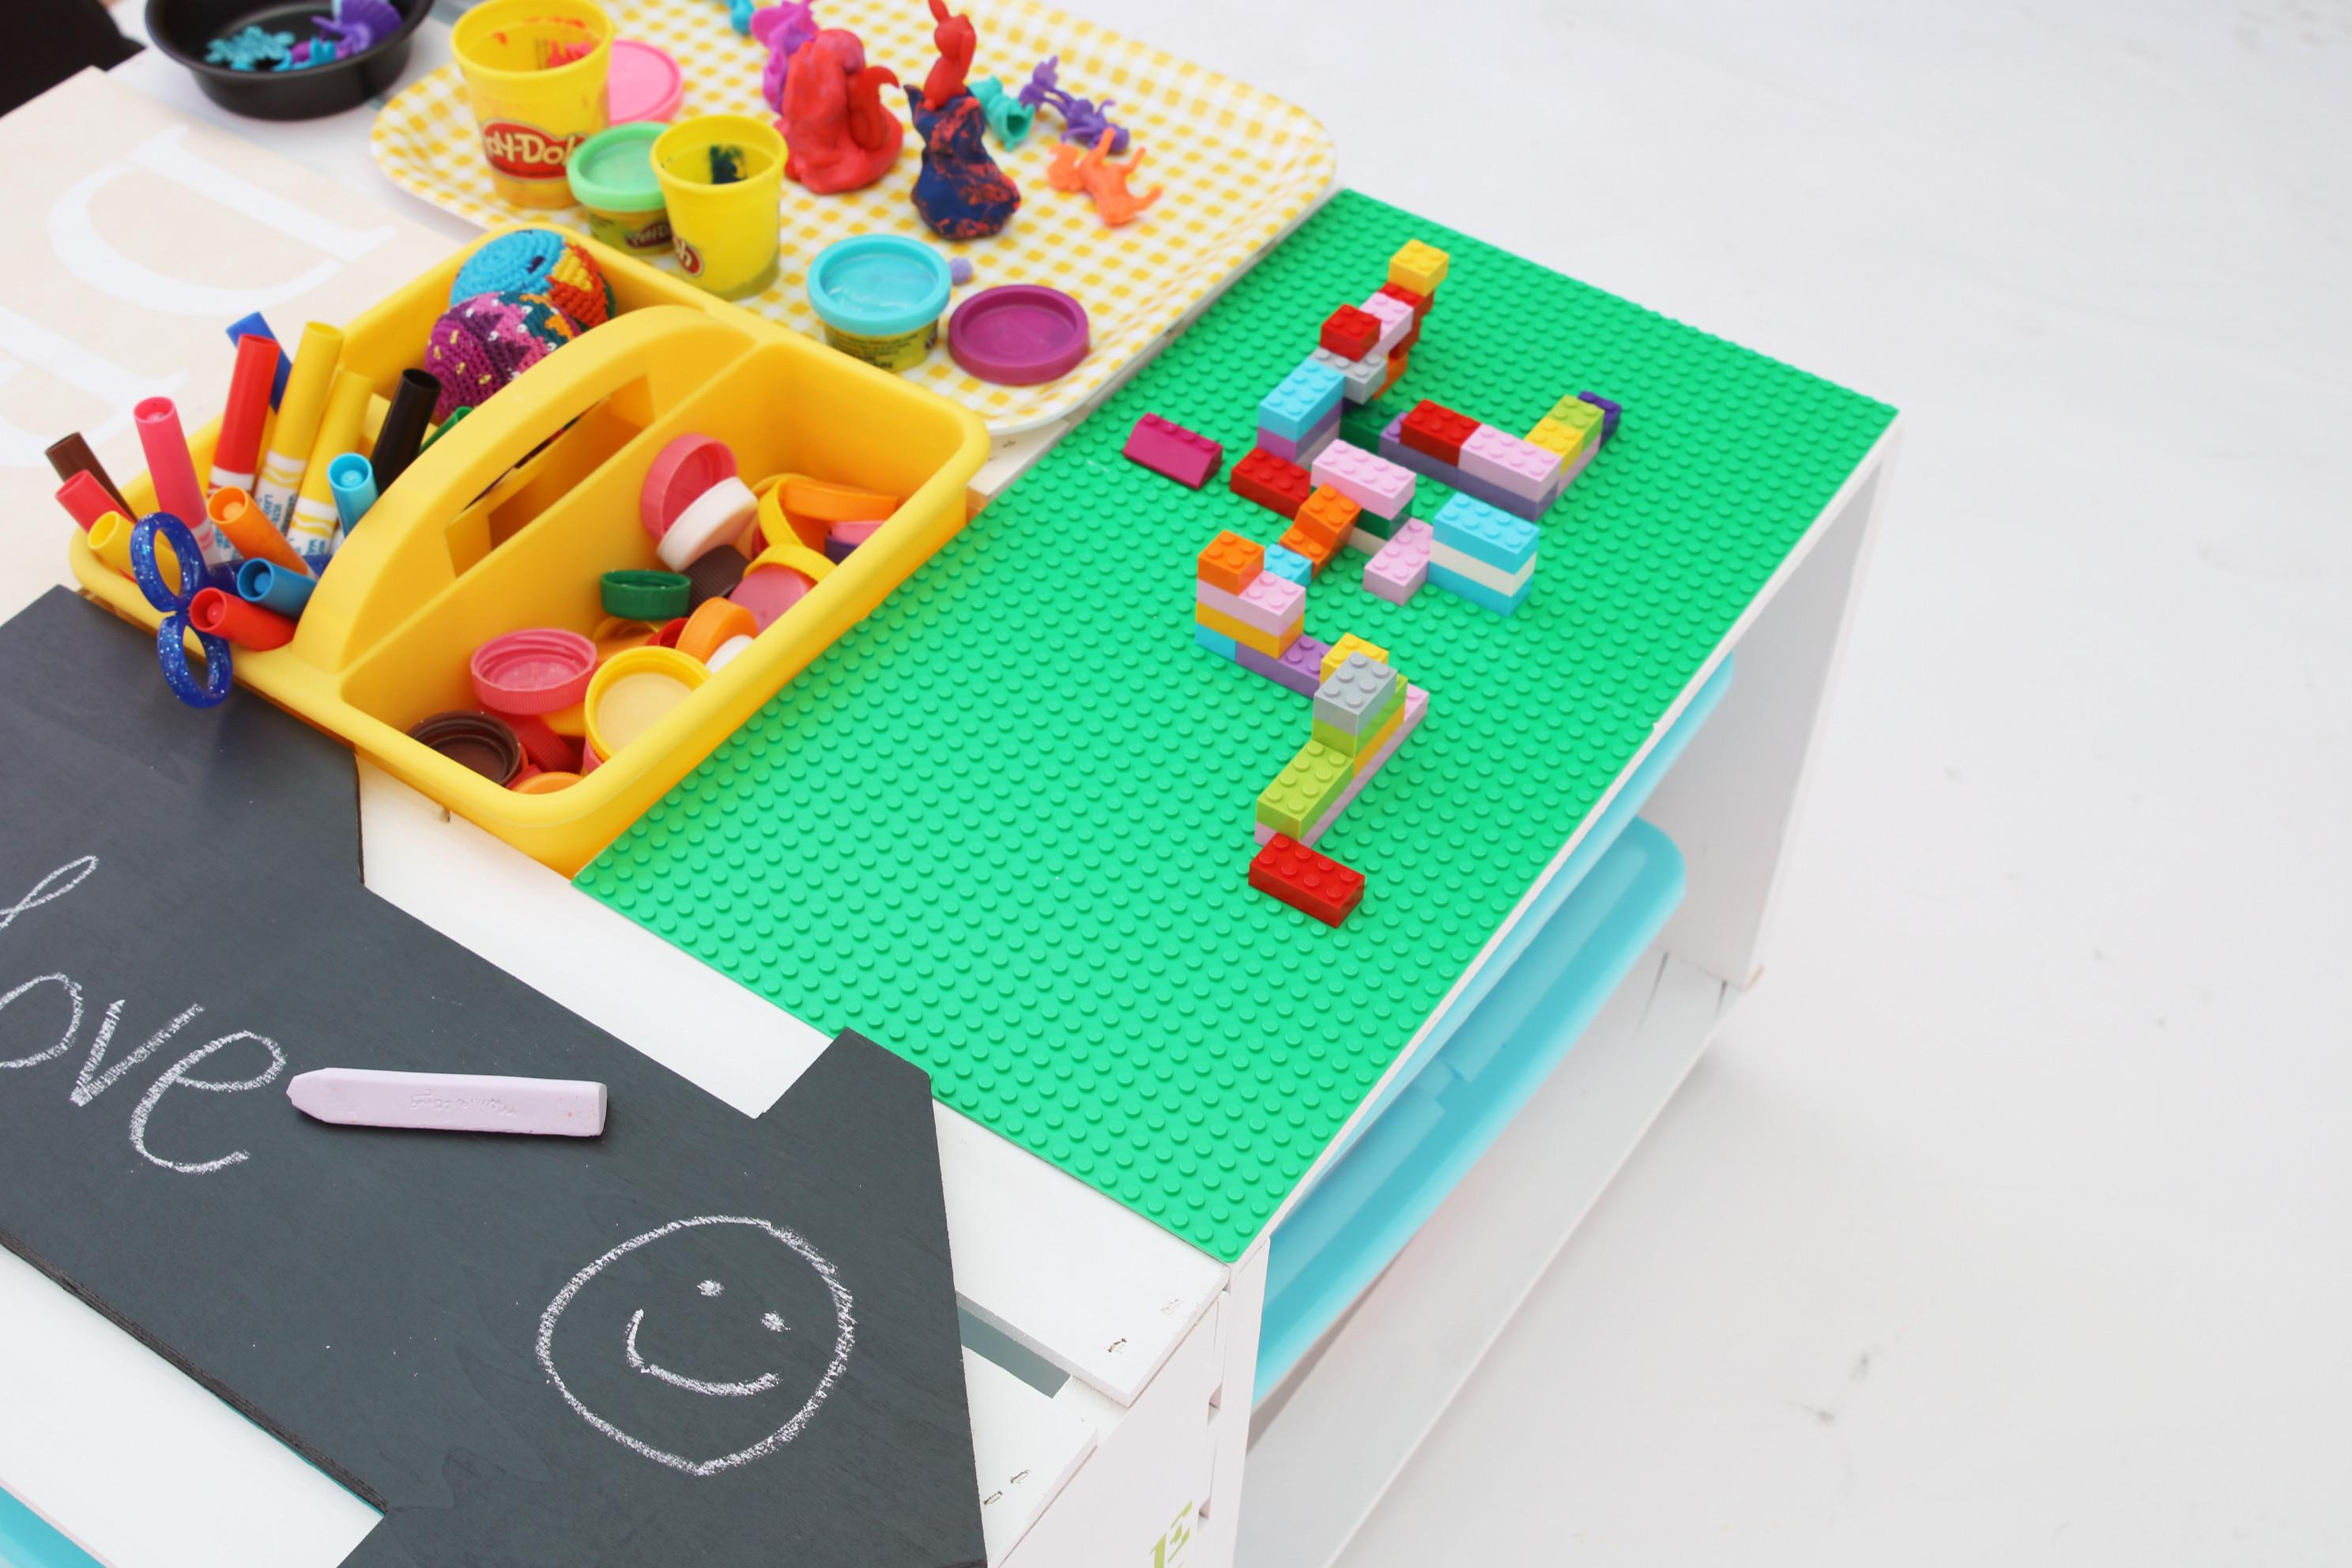 Diy Kids Activity Center Lego Table Made Wood